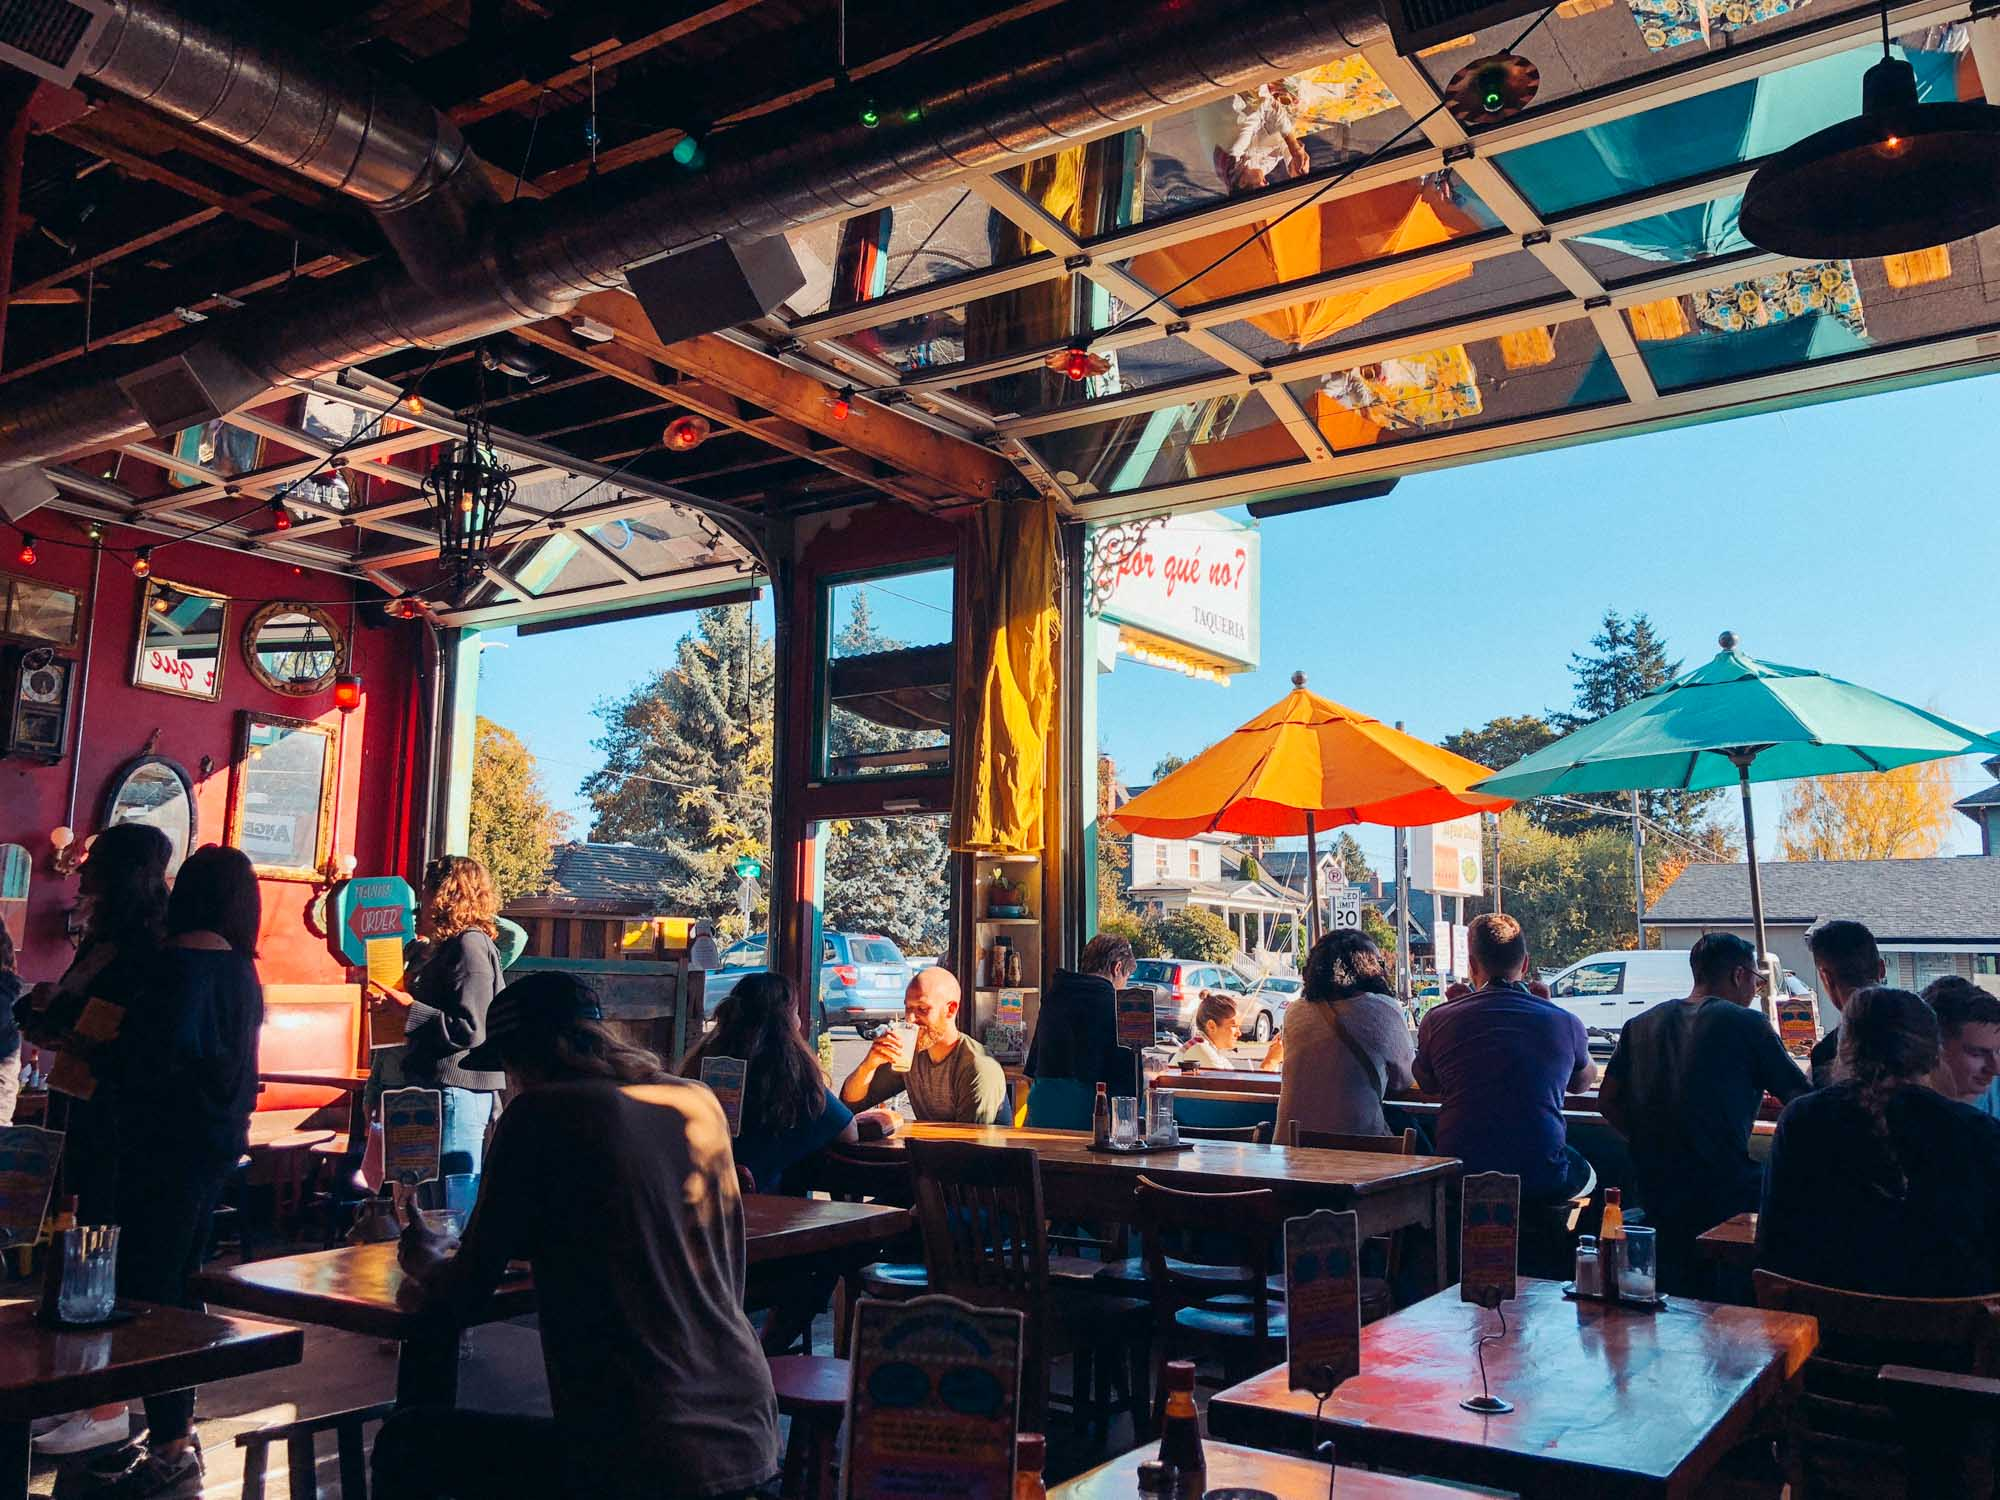 The Best Vegetarian Friendly Restaurants In Portland Oregon